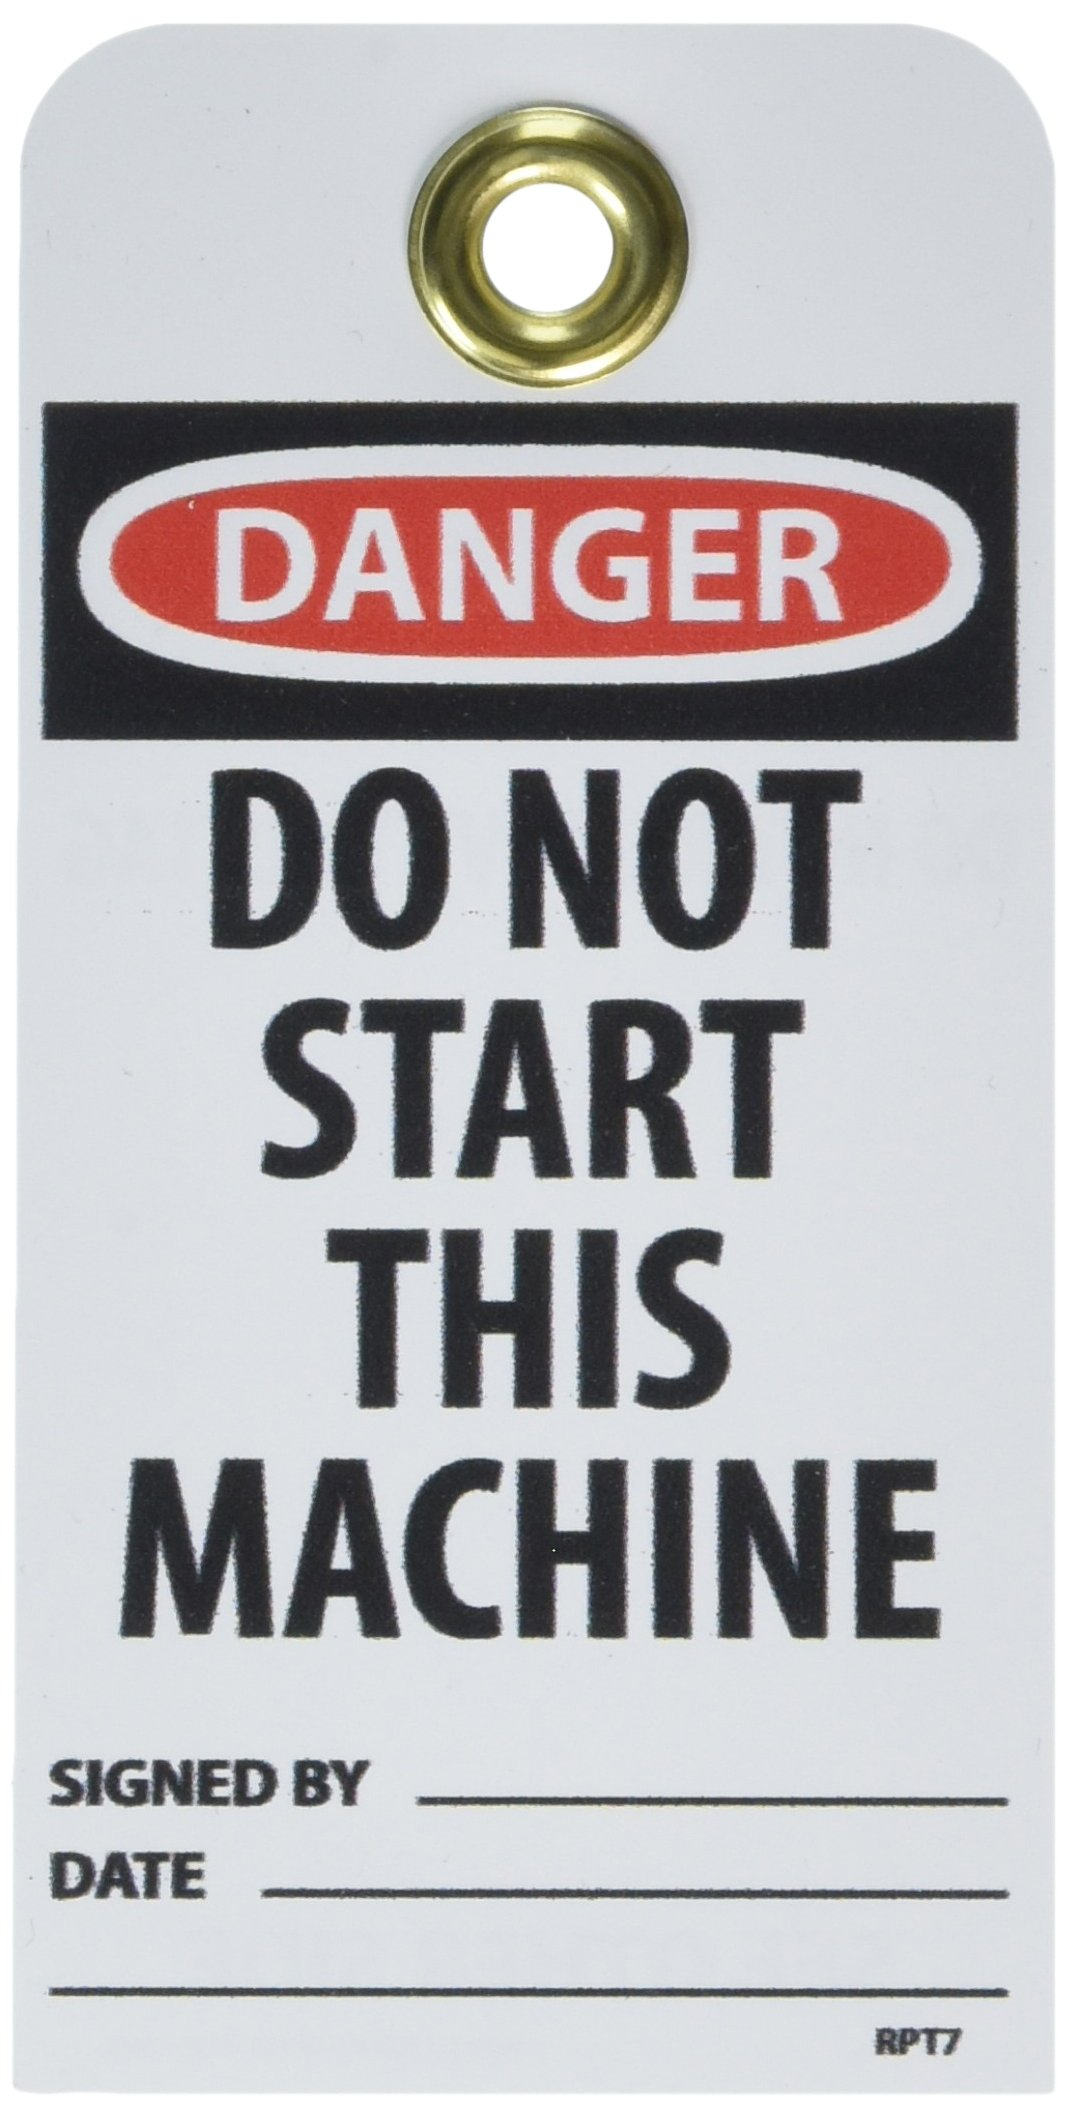 NMC RPT7G''DANGER - DO NOT START THIS MACHINE'' Accident Prevention Tag with Brass Grommet, Unrippable Vinyl, 3'' Length, 6'' Height, Black/Red on White (Pack of 25)